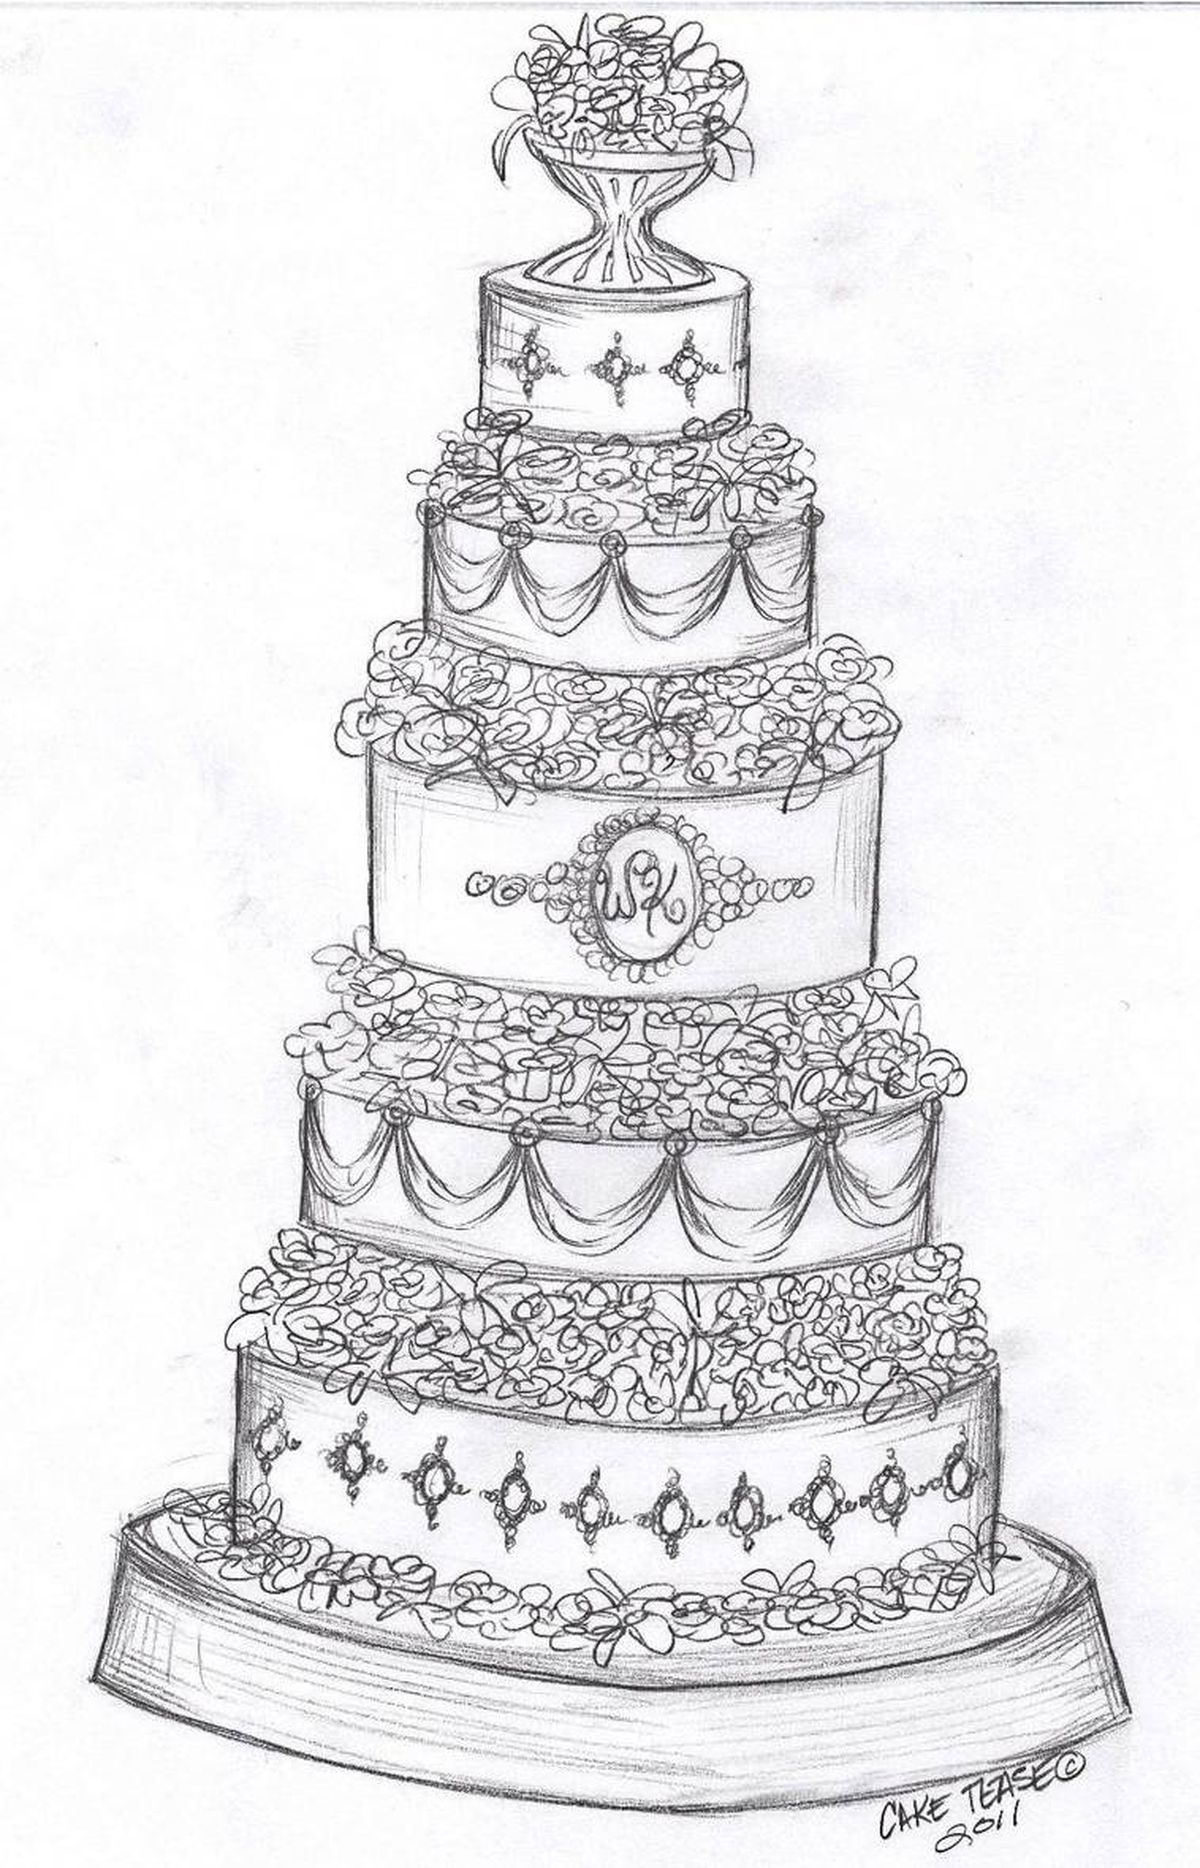 Theresa Lanziner of Cake Tease, Vancouver This five-tiered wedding cake design was inspired by both and Prince William's family history and the simplicity of Kate Middleton's style and grace. All five tiers are separated with various white, gum paste flowers, including roses, magnolias, lily of the valley and stephanotis. The top, middle and bottom tiers stand slightly taller than the others and are designed with Kate's engagement ring in mind. Clear sugar gems, replicating diamonds, and silver piping work surround sapphire-blue sugar gems around these tiers. The centre tier also includes the first initials of the couple. Sapphire blue draping finishes the remaining tiers and each drape is topped with a small sugar gem and silver piping. The cake itself rests on a traditional silver cake stand to compliment the small silver piping details on the cake. A small silver chalice tops the cake filled with cascading sugar flowers.